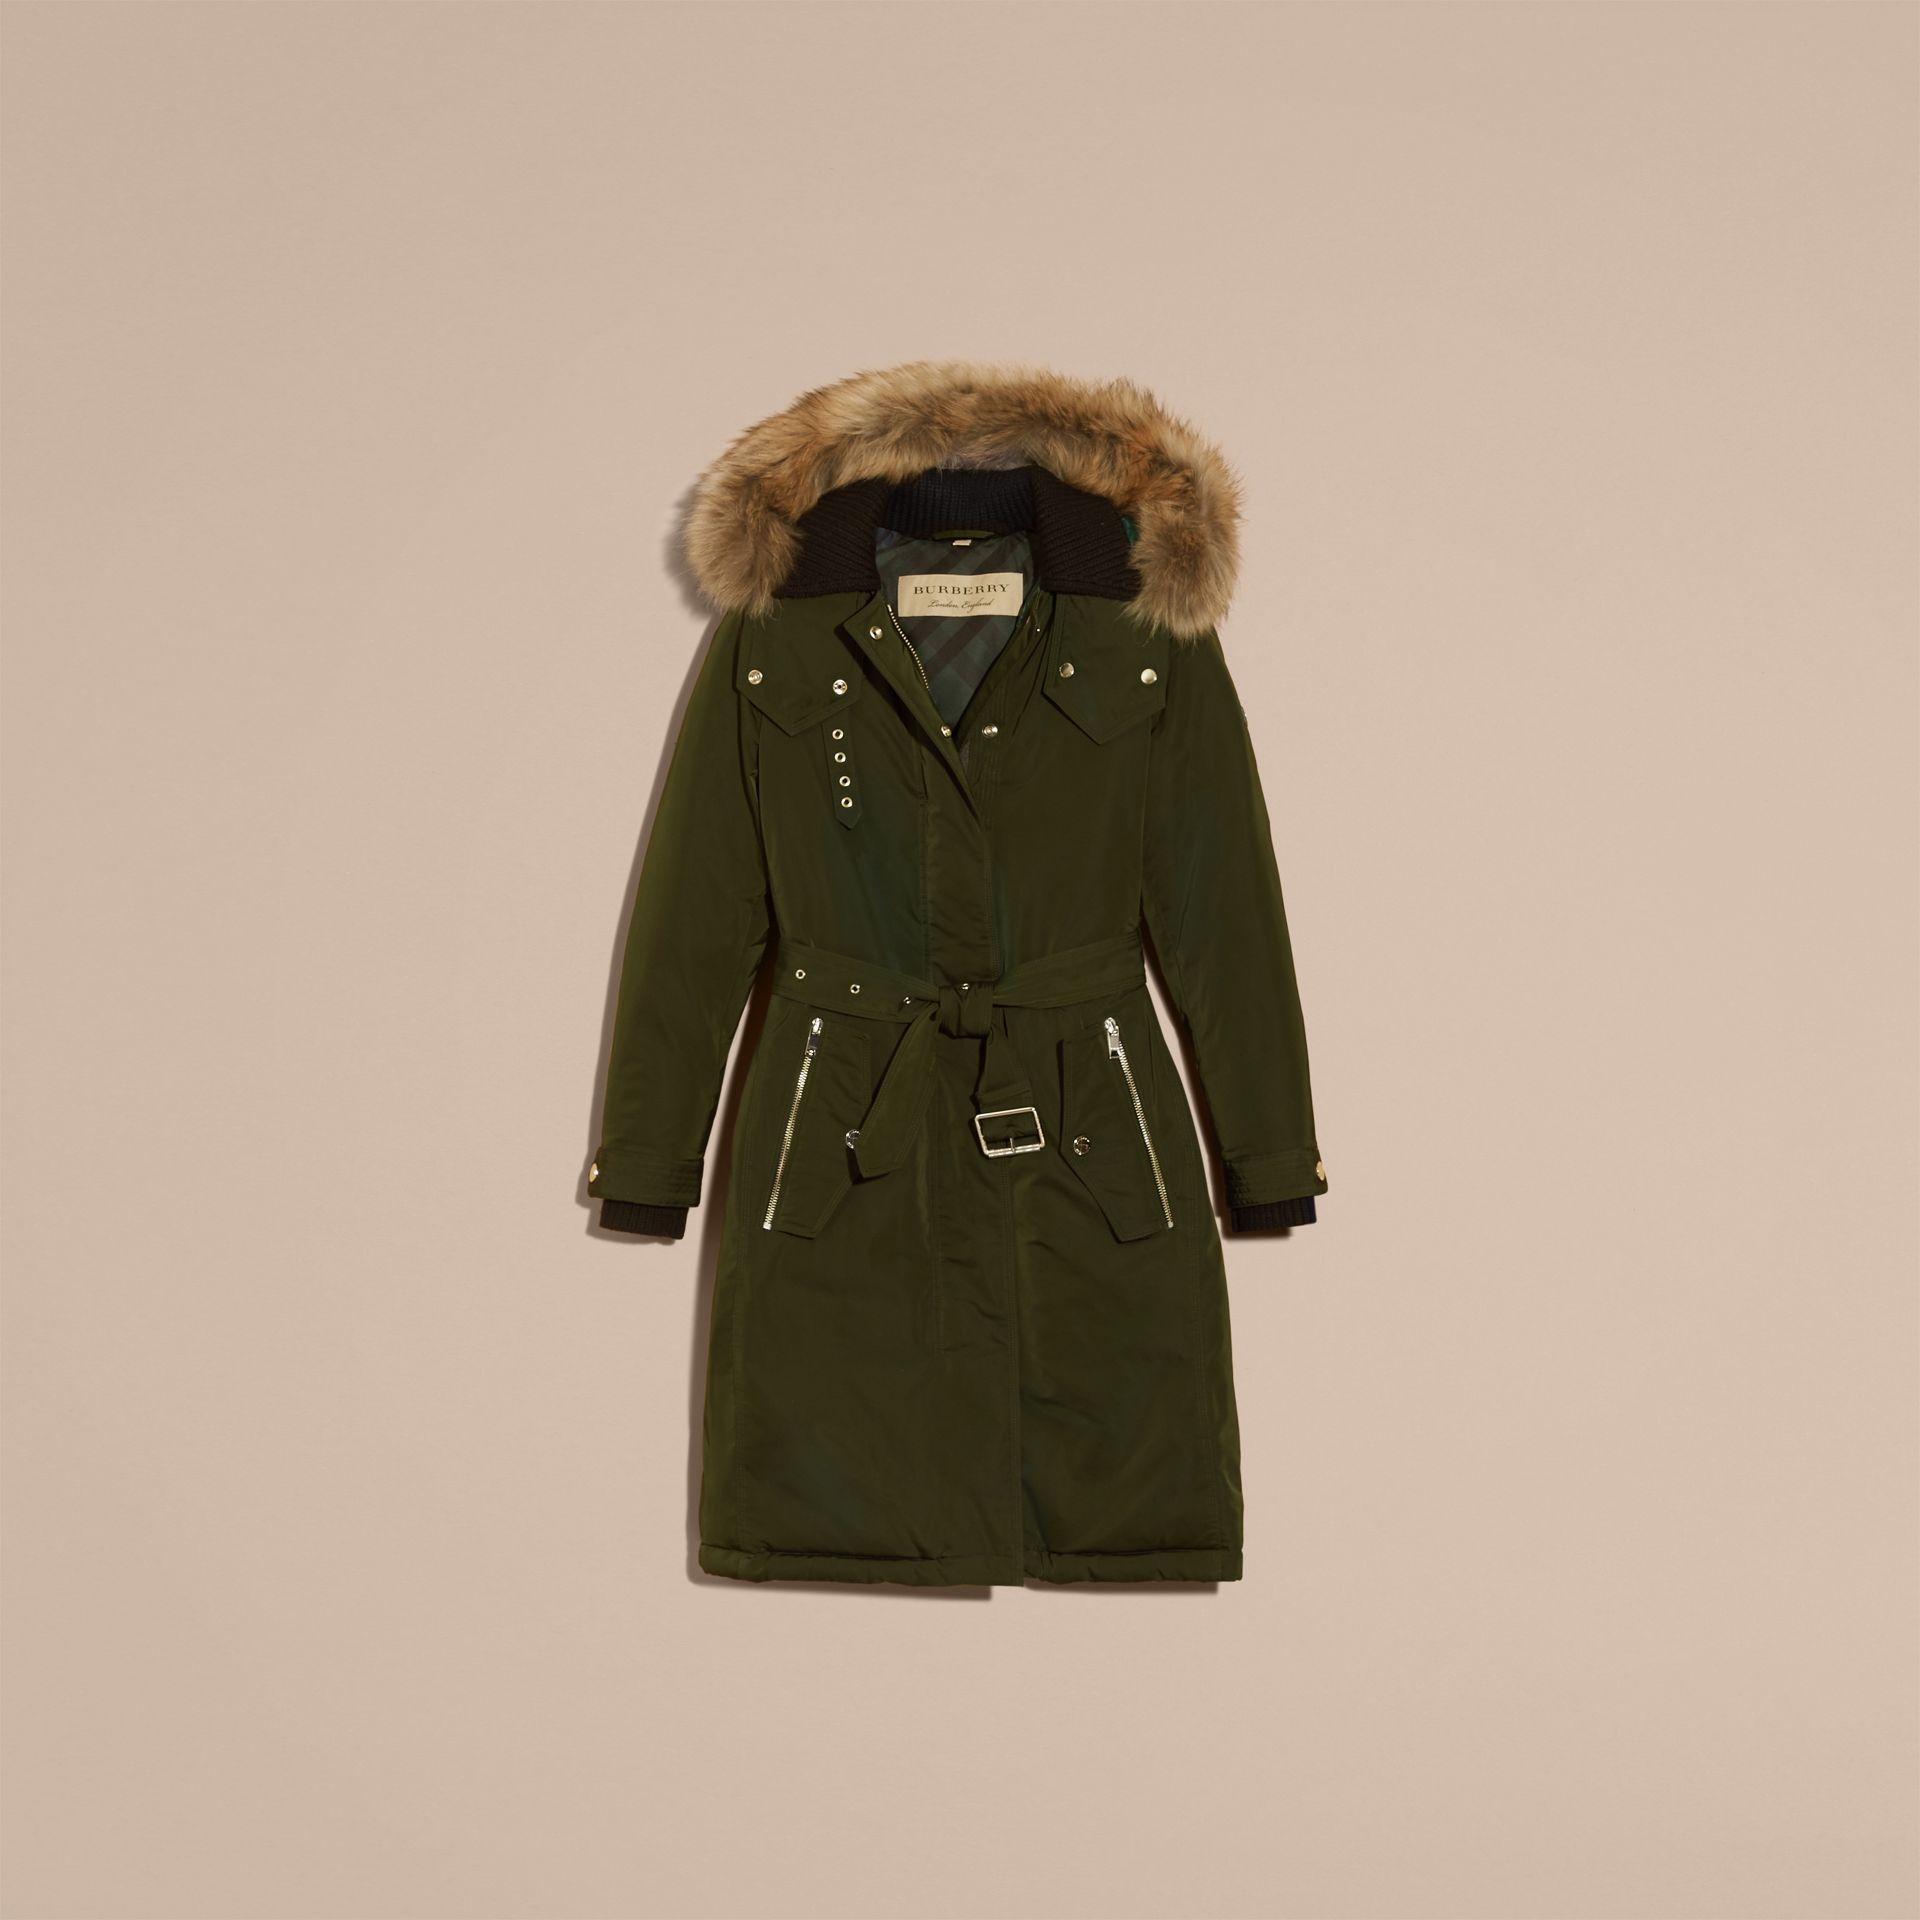 Down-filled Parka Coat with Detachable Fur Trim in Dark Cedar Green - Women | Burberry - gallery image 4